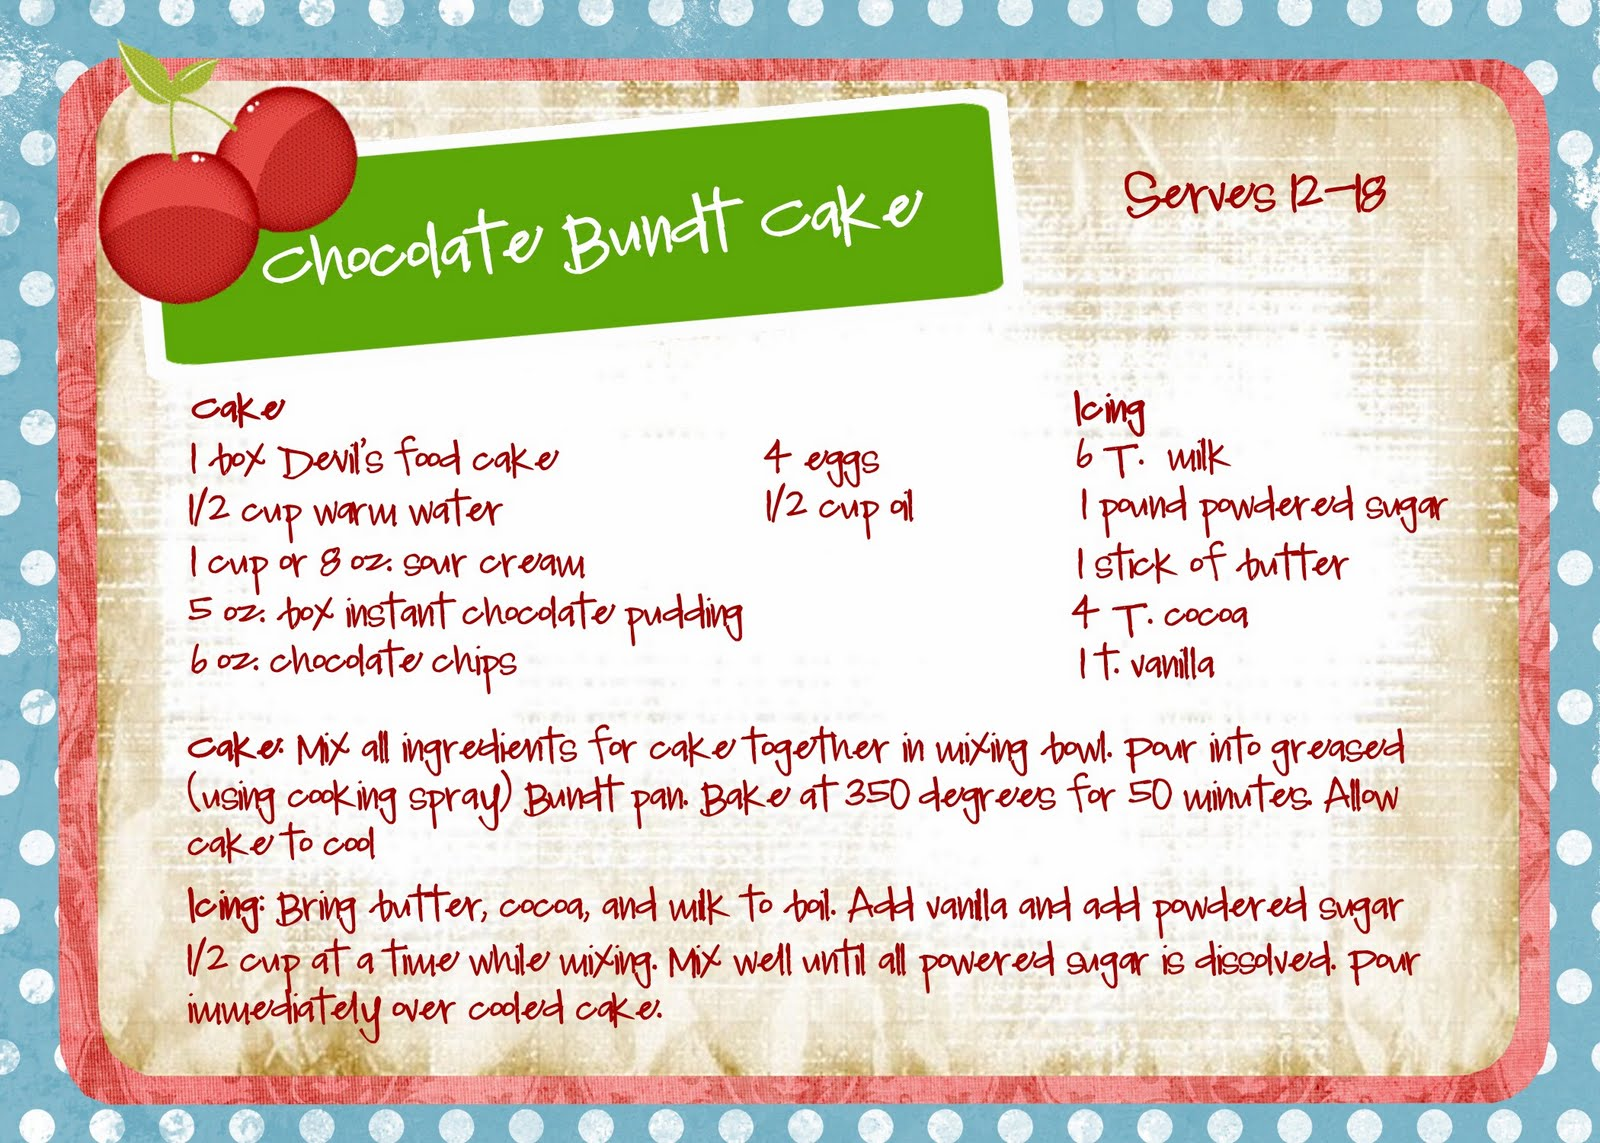 RecipecardChocolateBundtCake - *~* Polling for Cooking Competeion May 2013 *~*